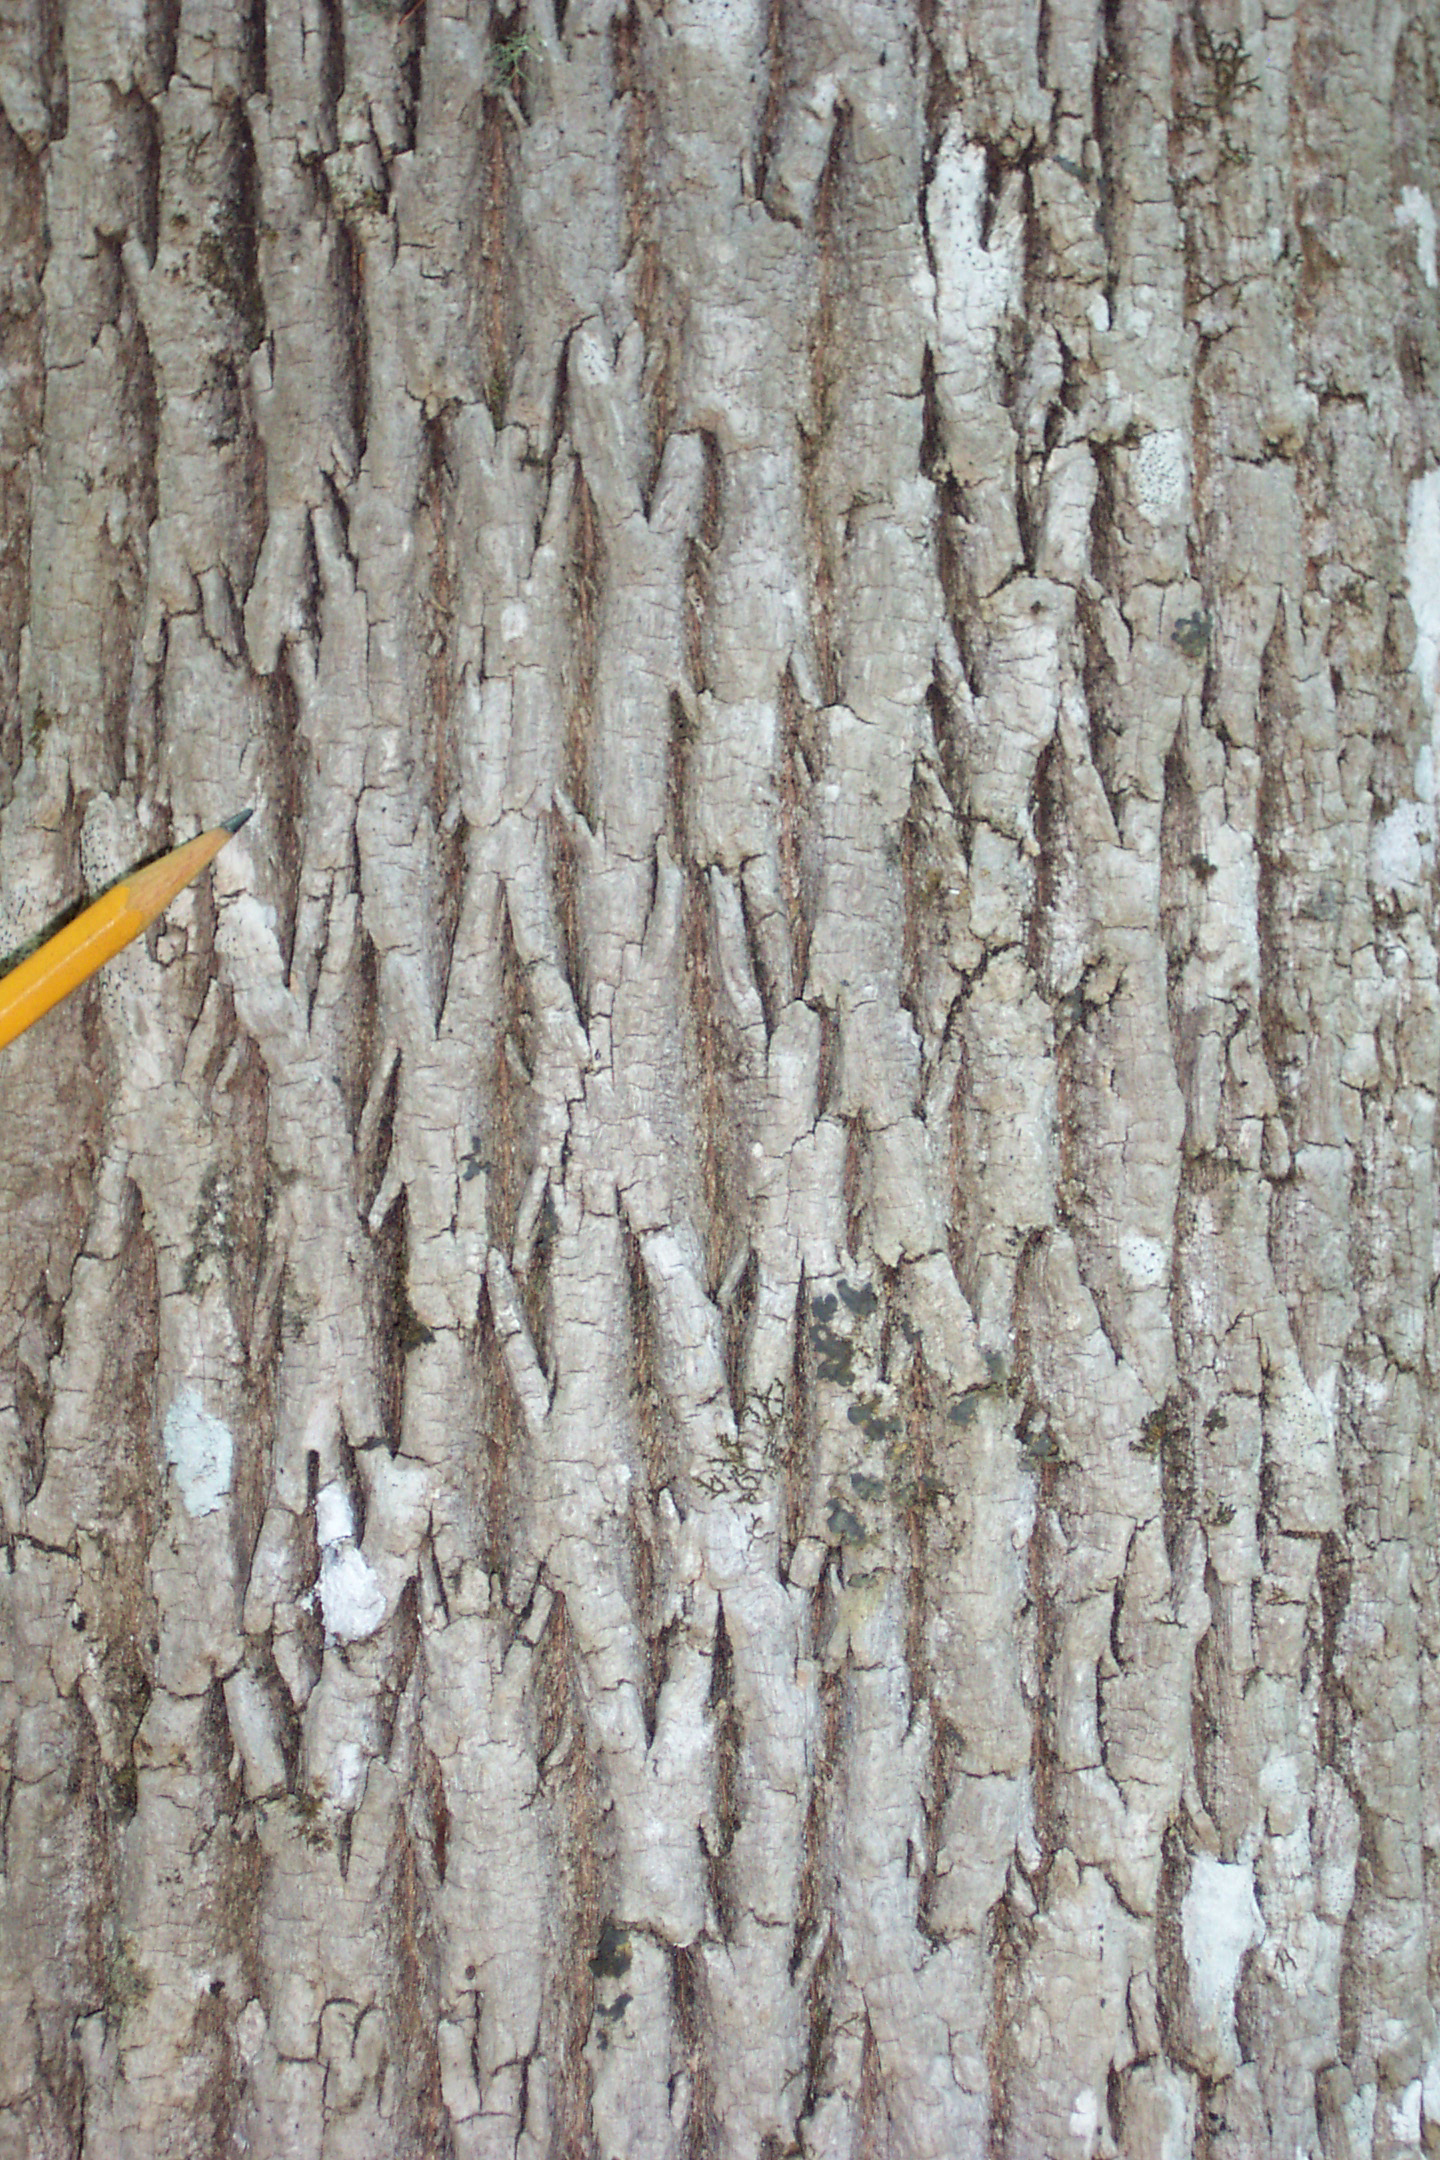 Ash Wood Bark ~ White ash bark knowing the land is resistance